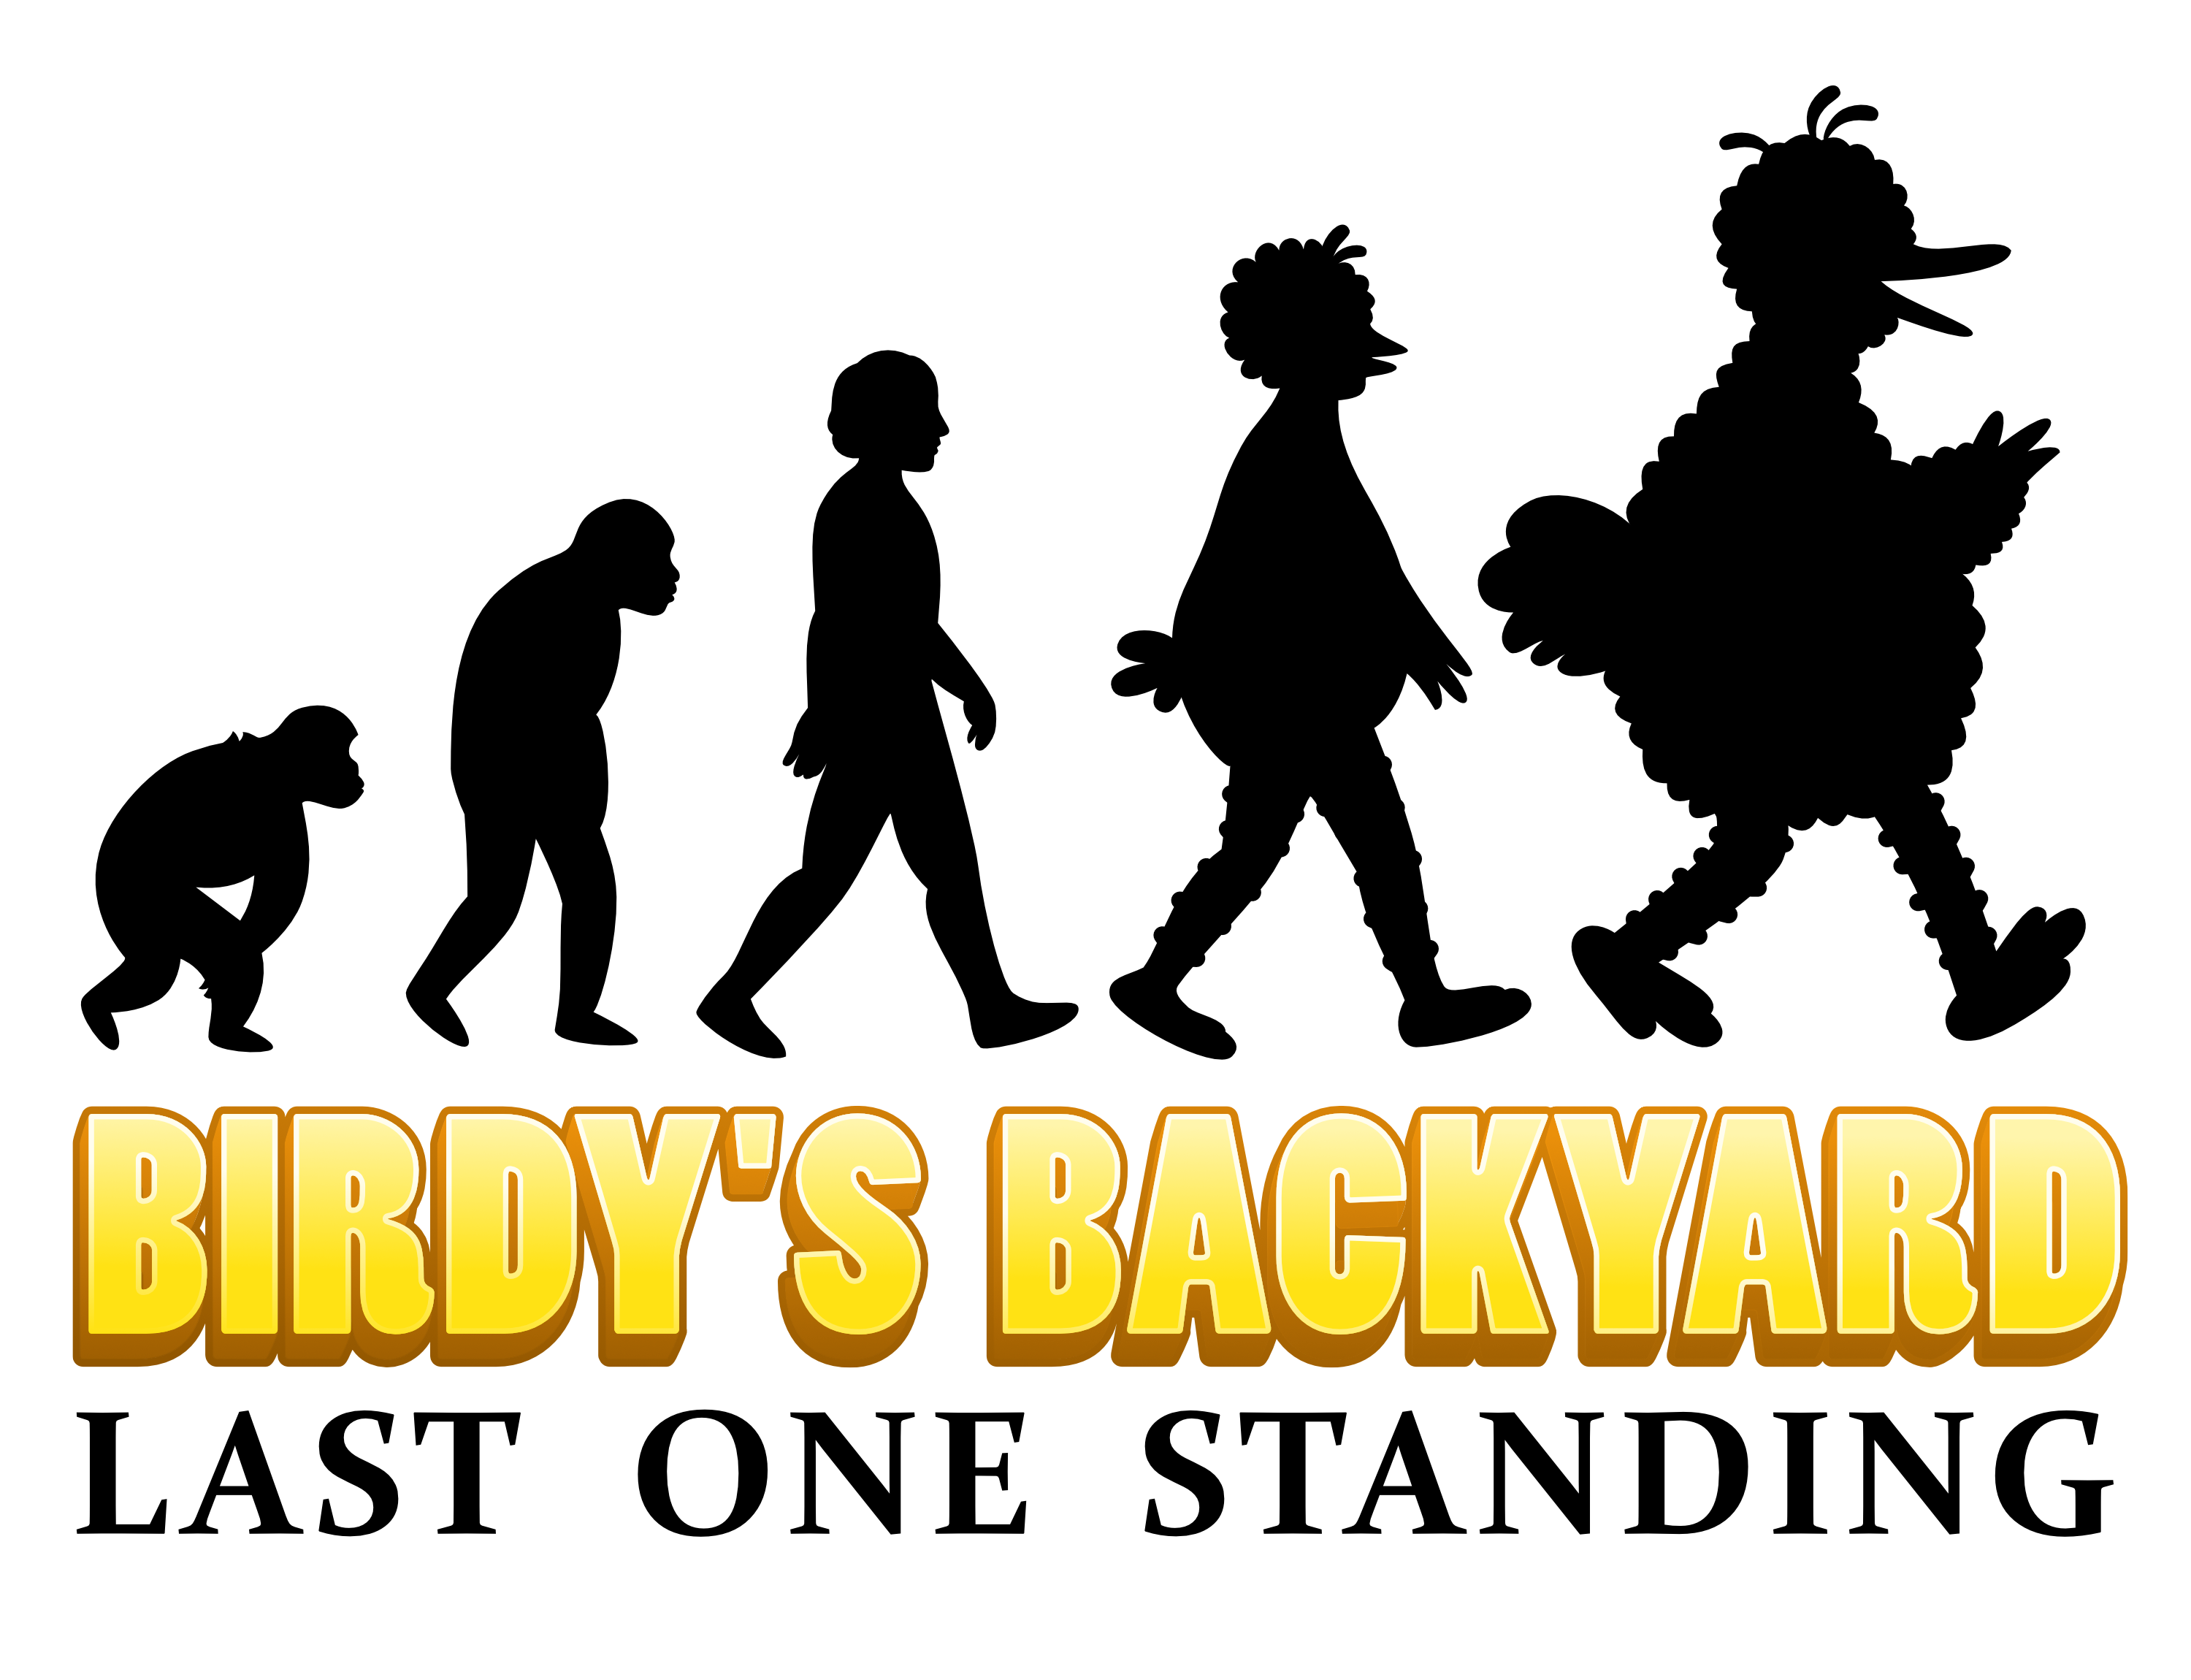 Birdy's Backyard Ultra